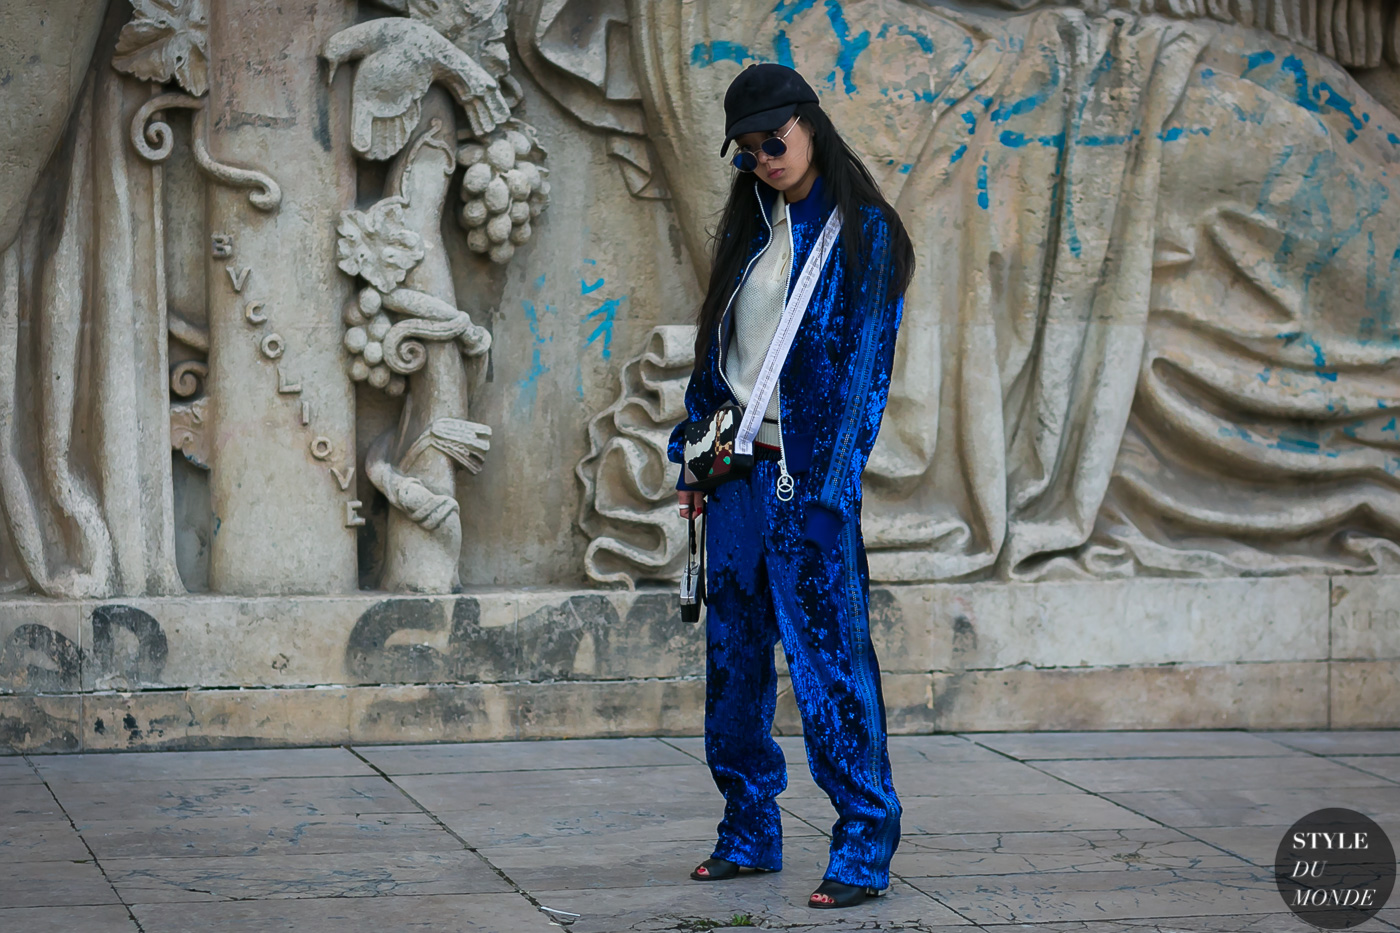 Christina Paik by STYLEDUMONDE Street Style Fashion Photography0E2A3050